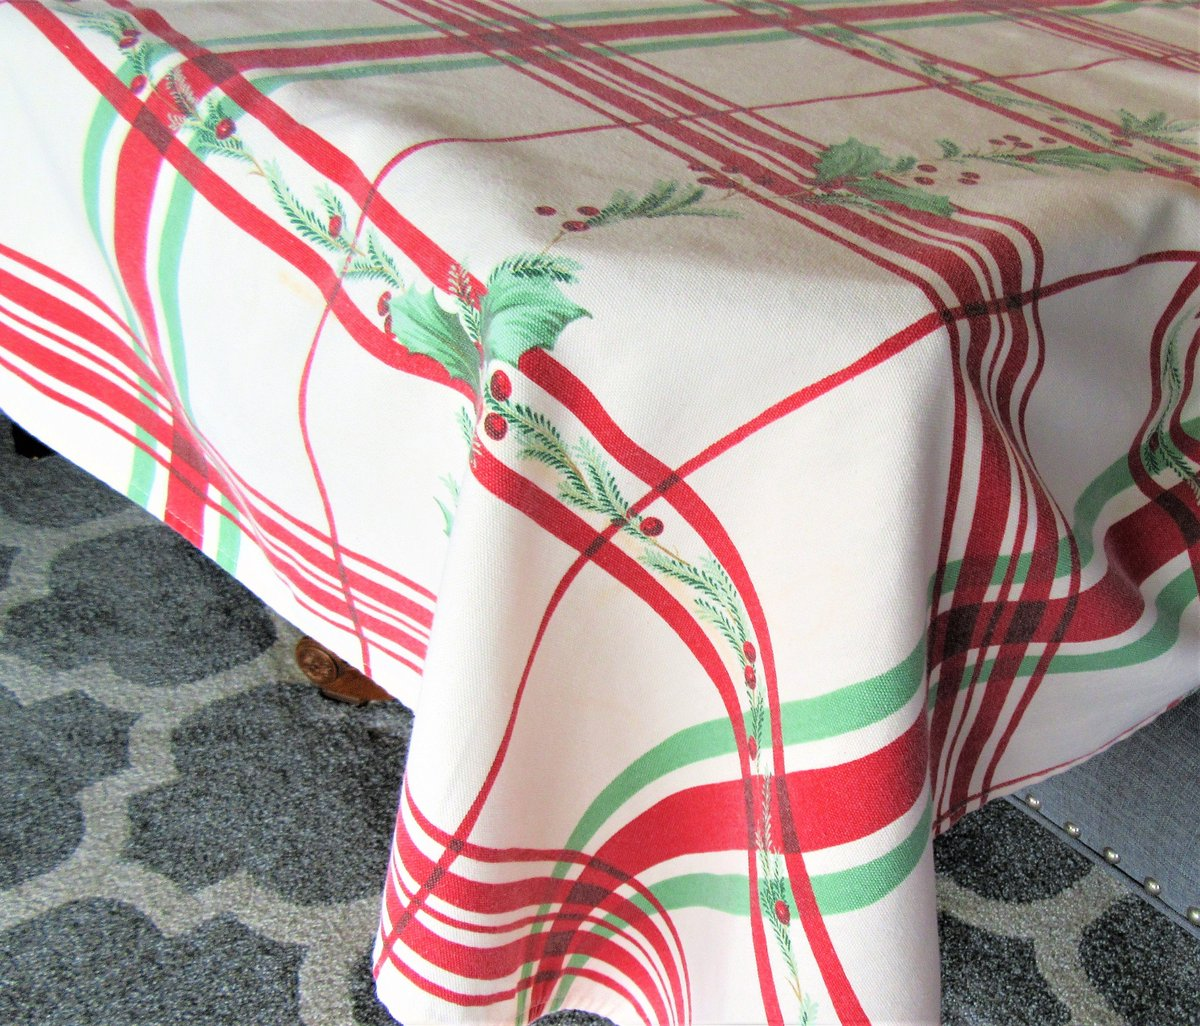 Excited to share the latest addition to my #etsy shop: Lenox Holiday Tablecloth, Banquet Size, 60 X112 Rectangle, Red Stripes and Holly, Heavy Cotton https://t.co/roraFuaUu8 #white #christmas #rectangle #red #cotton #vintagetablecloth #vintagelinens #vintagetablecover https://t.co/IkIuX3PHW1